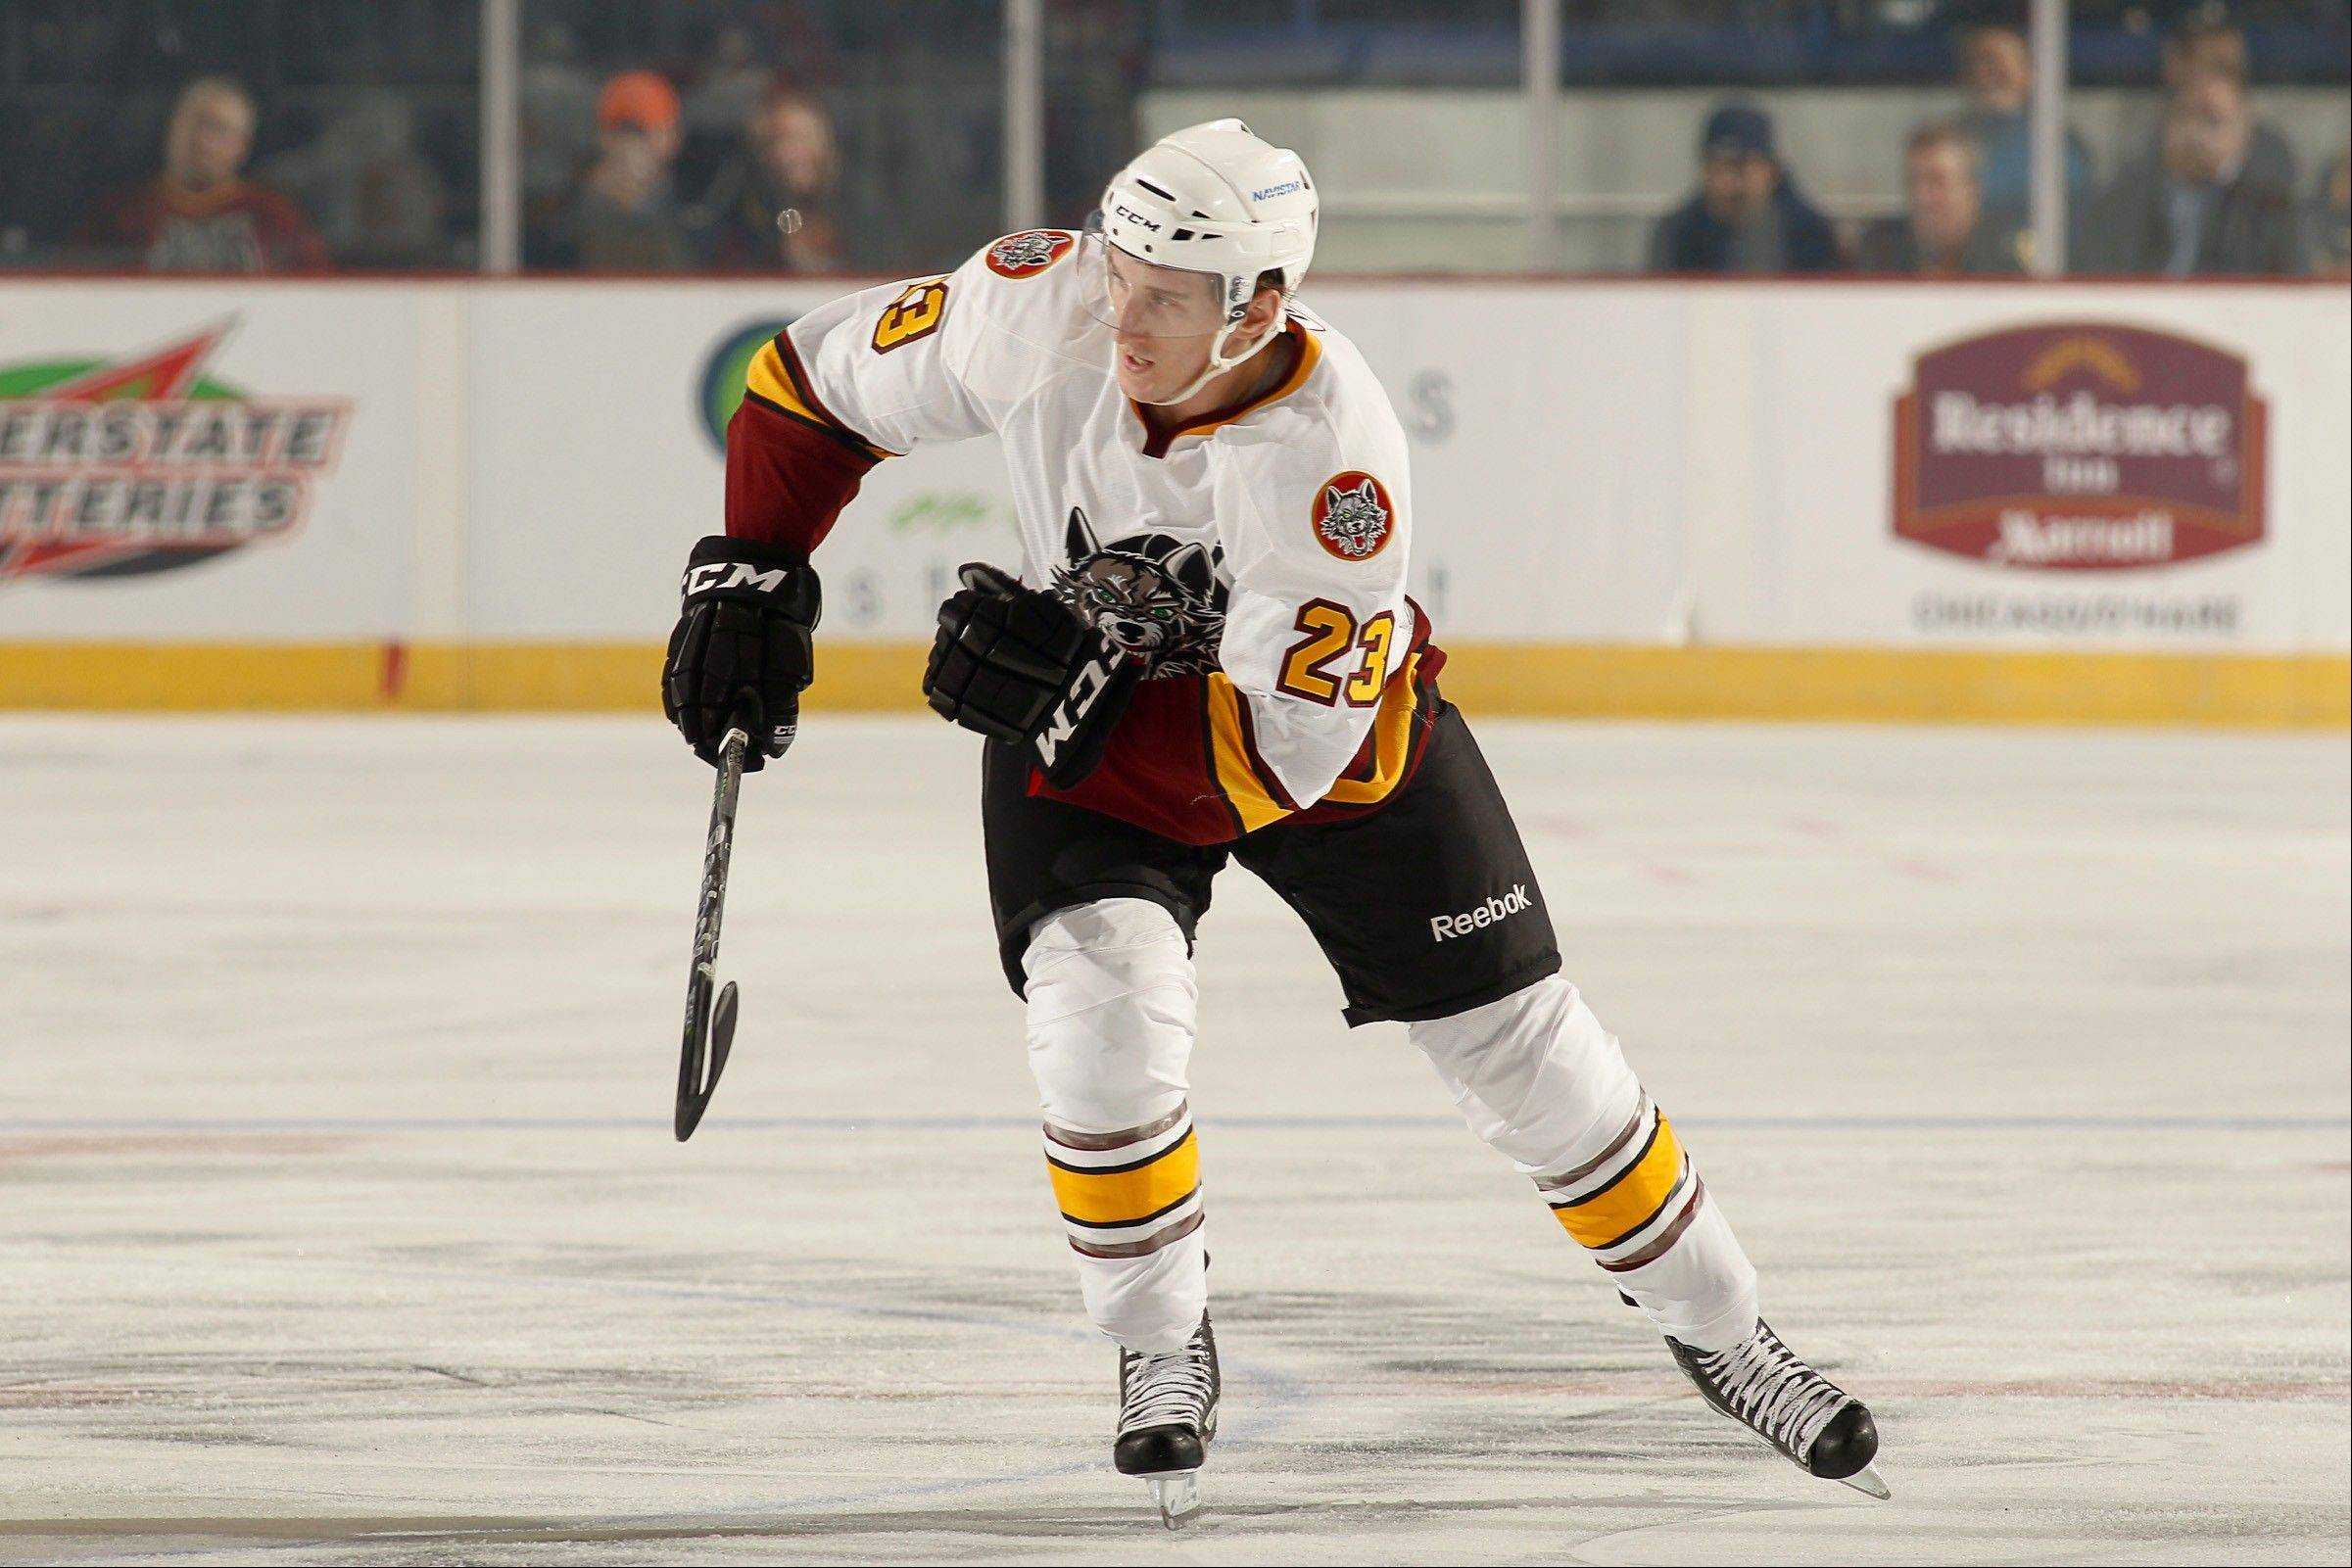 Having grown up in Lombard and Elburn, left winger Bill Sweatt has found a home with the Chicago Wolves as he pursues his dream to play in the NHL.